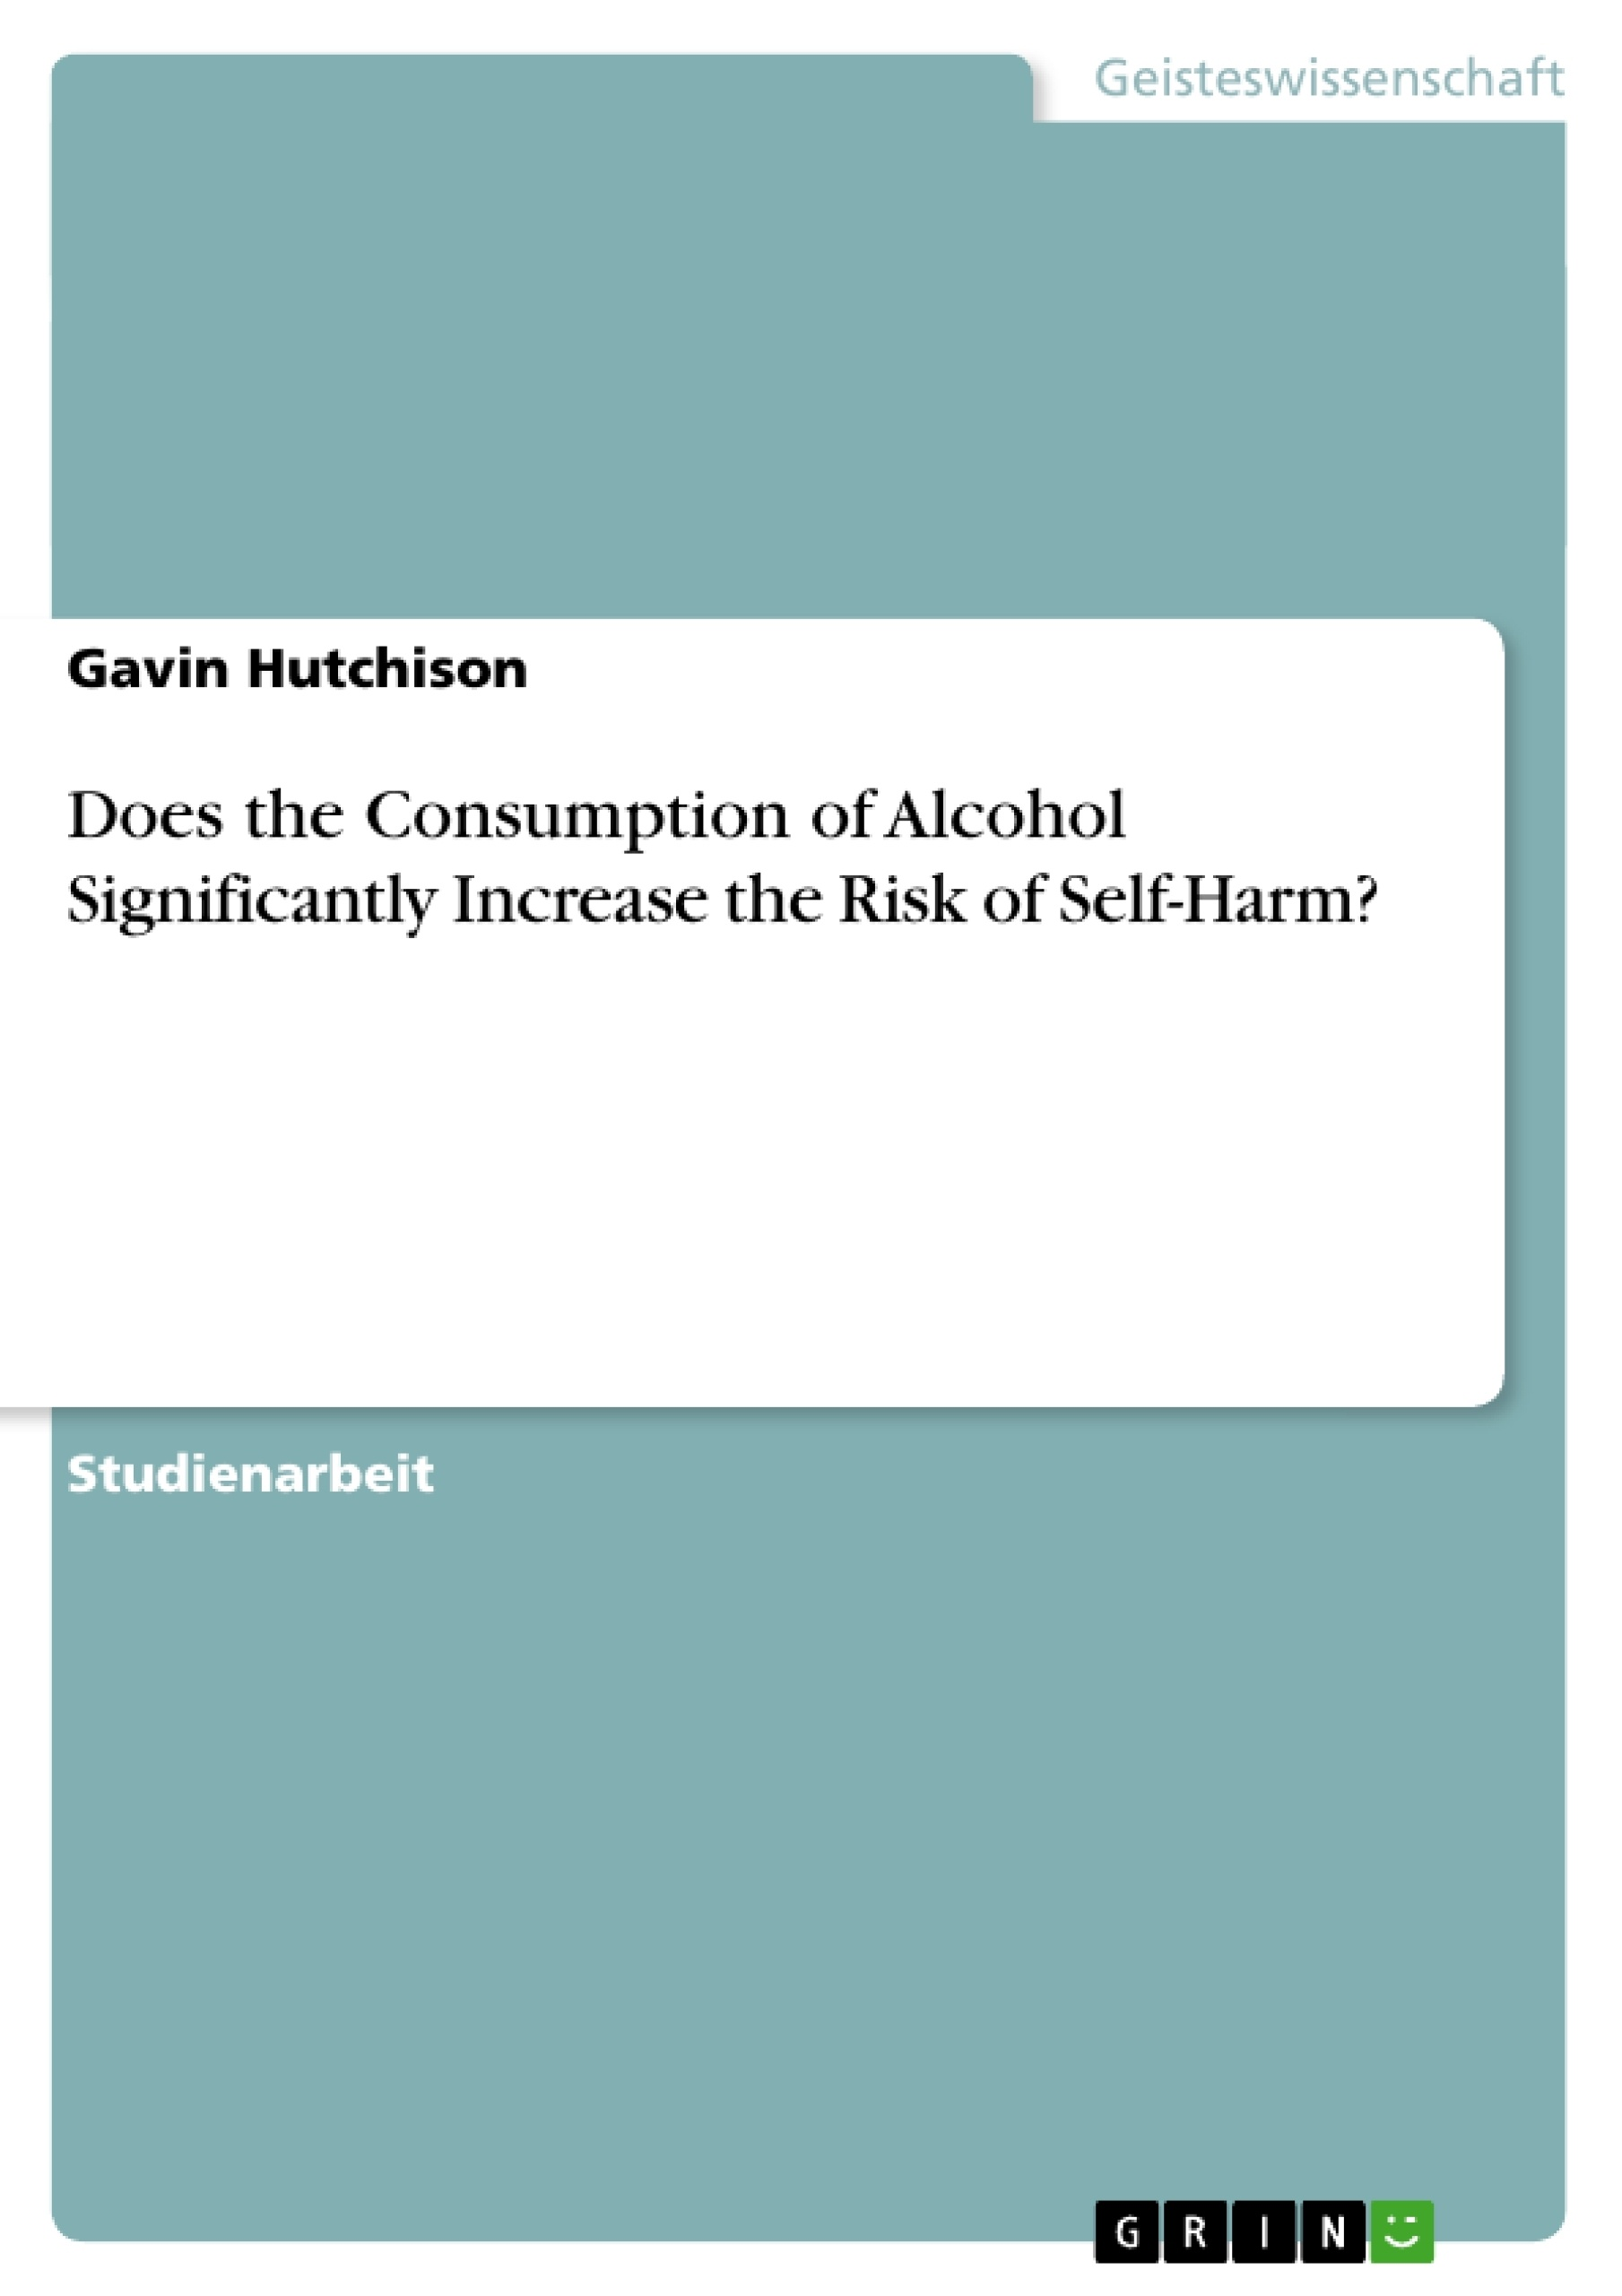 Titel: Does the Consumption of Alcohol Significantly Increase the Risk of Self-Harm?